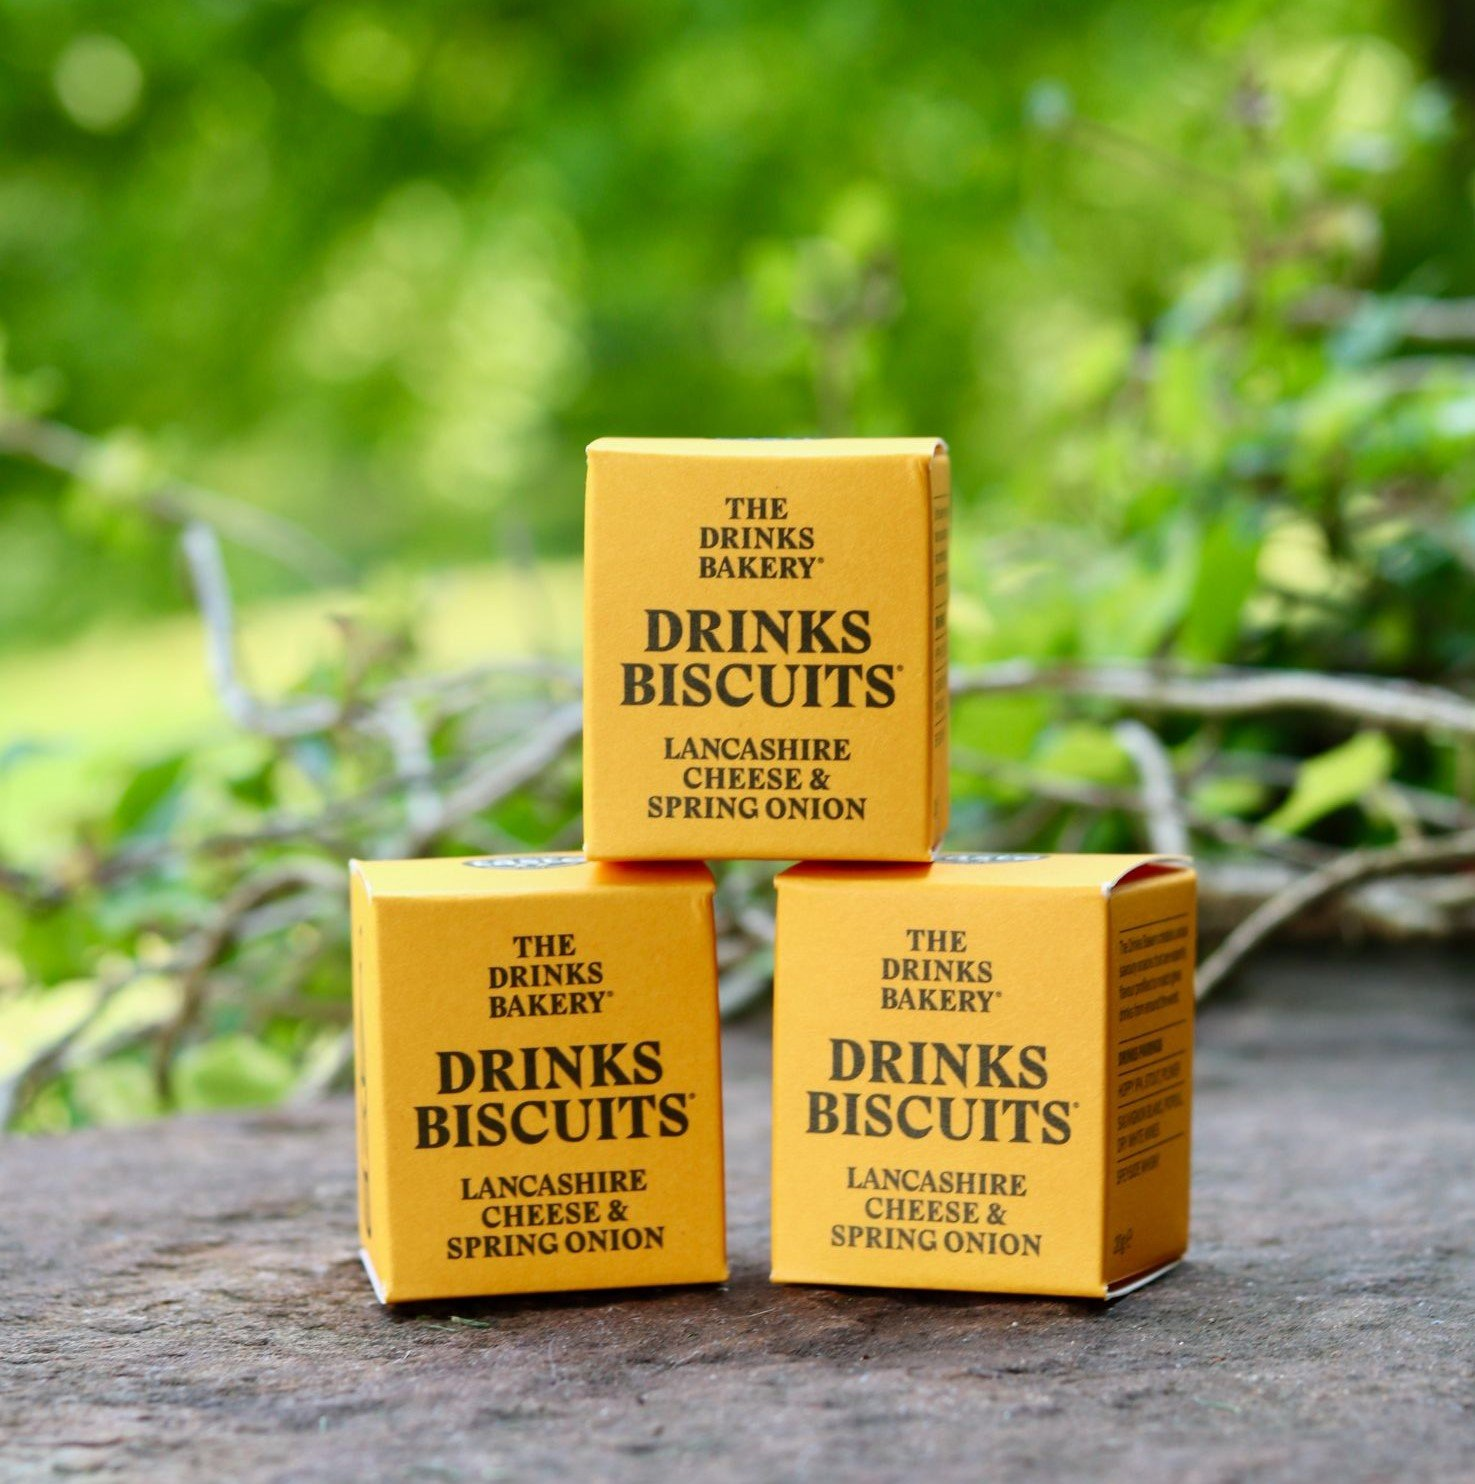 Three boxes of Lancashire Cheese & Spring Onion Drinks Biscuits